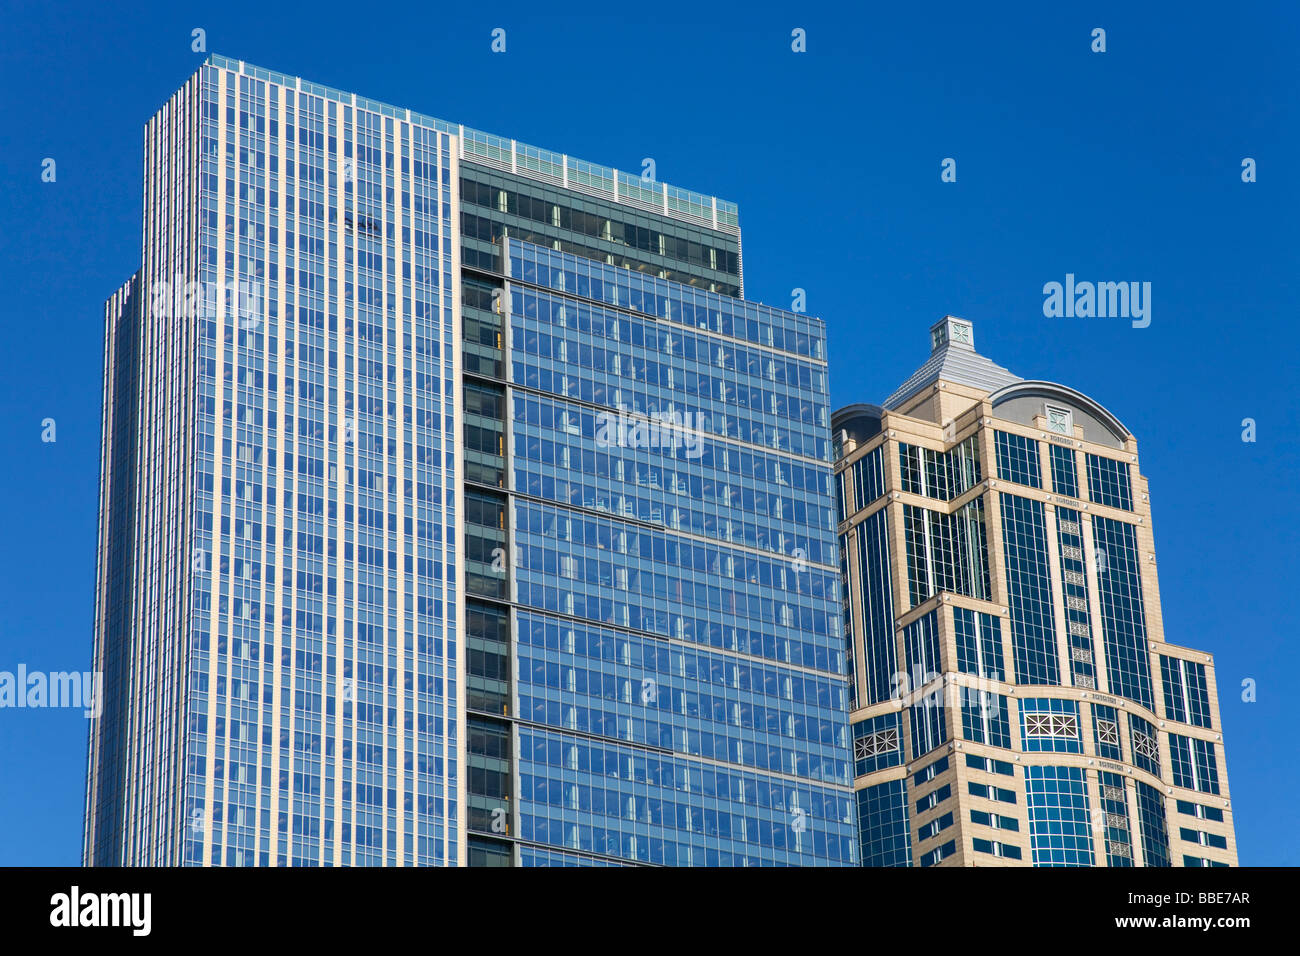 Washington Mutual Towers; Seattle, Washington State, USA - Stock Image